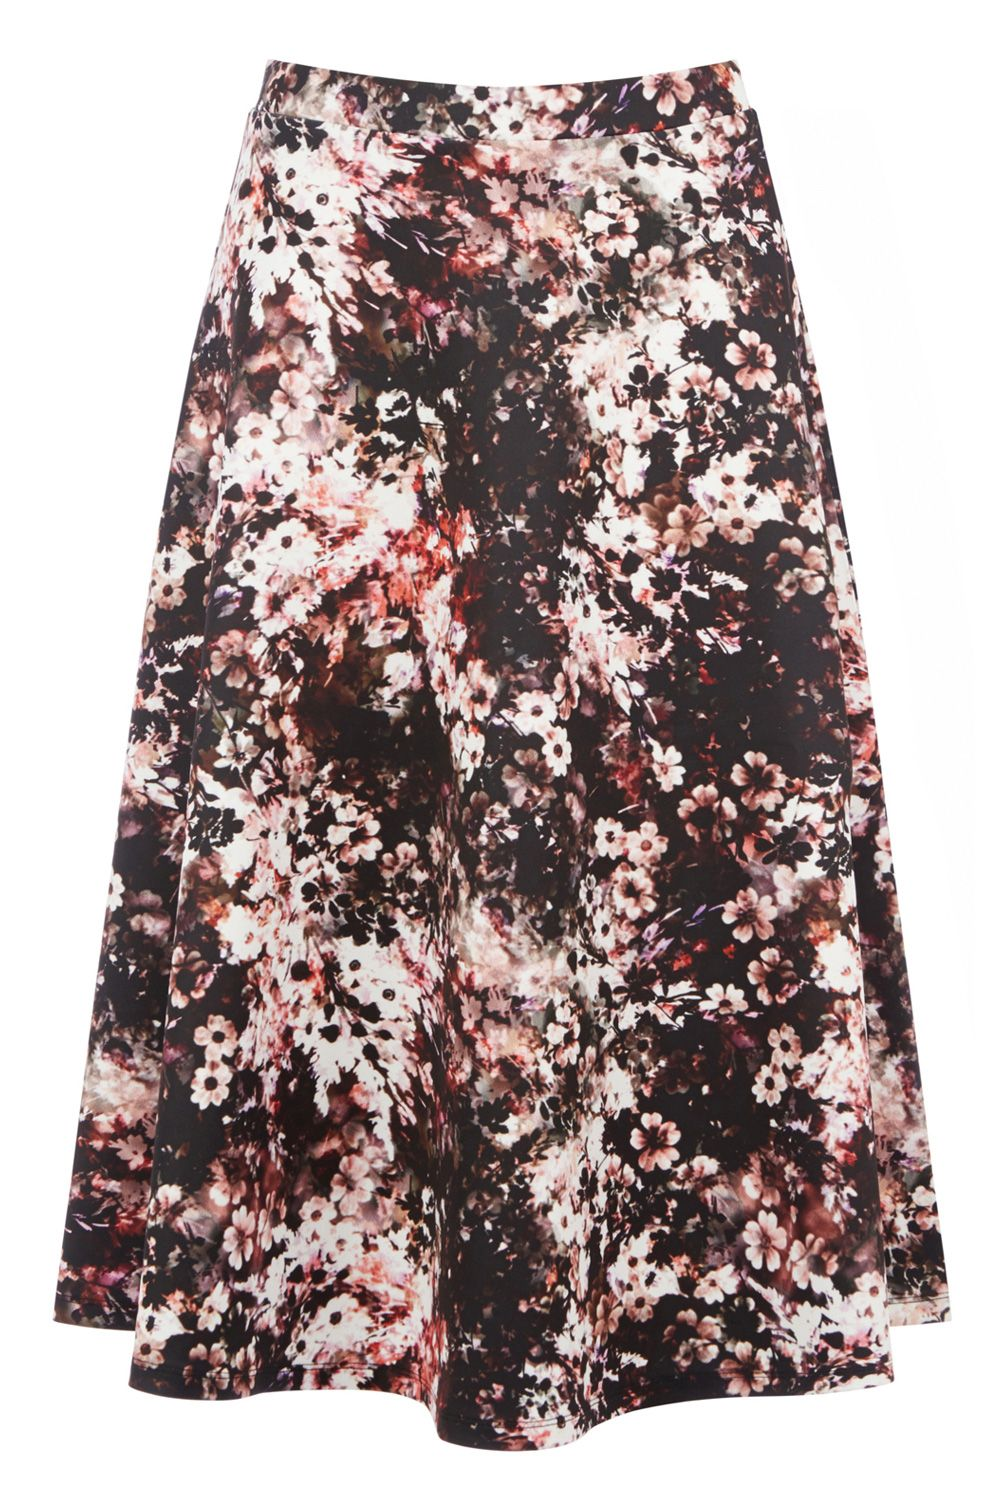 Clothing | Other DARK FLORAL PRINT FULL MIDI SK | Warehouse